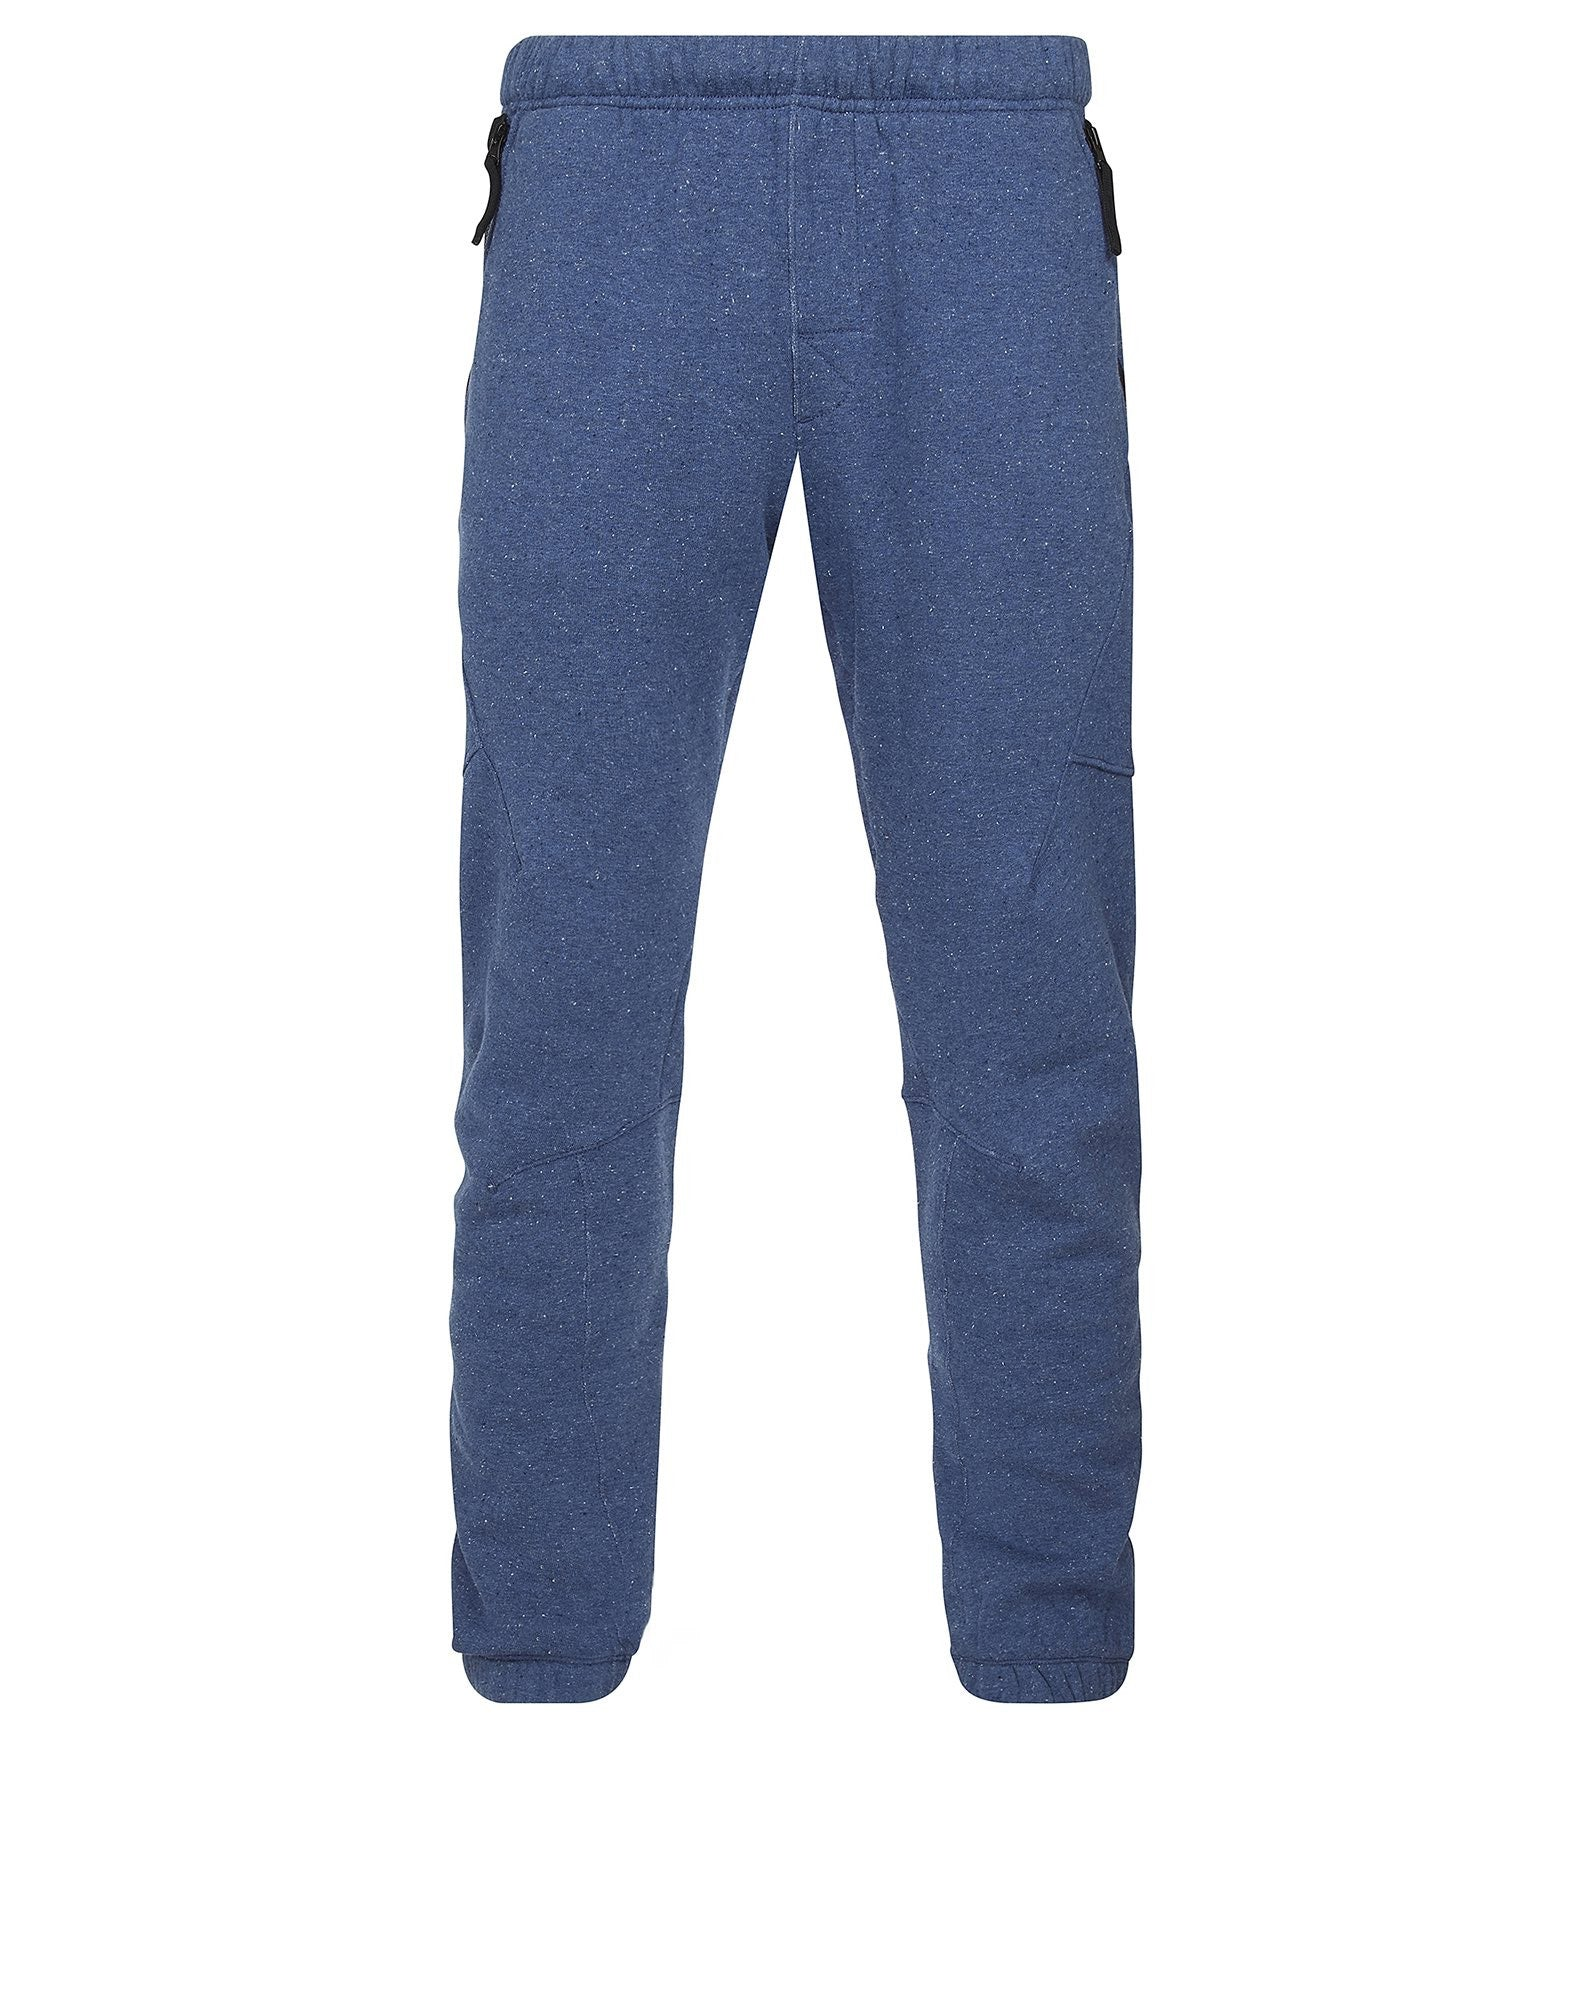 66755 Jogging Pants in Blue